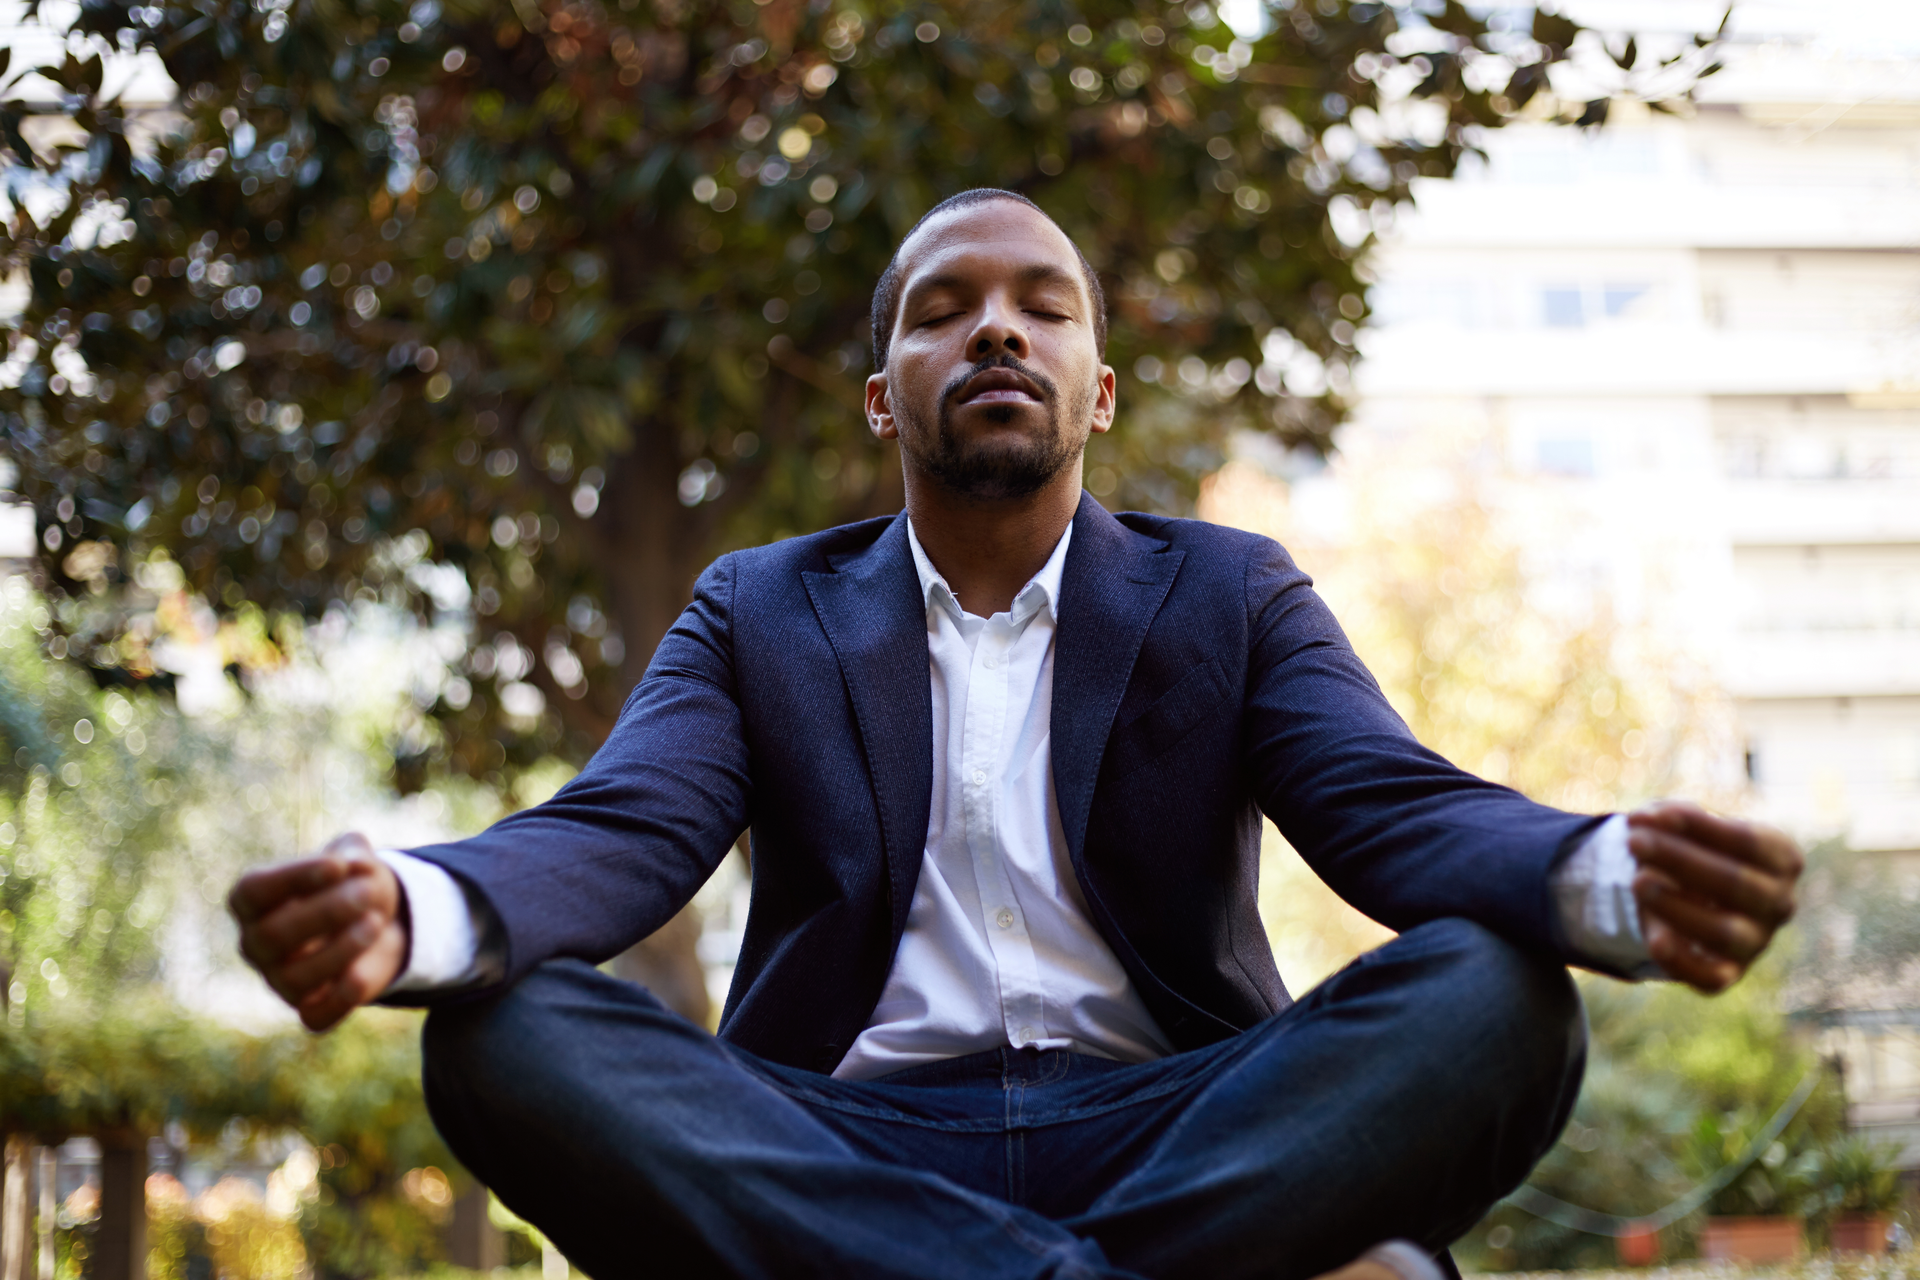 Young male in informal clothes meditating in lotus pose taking a deep breath outside corporate office